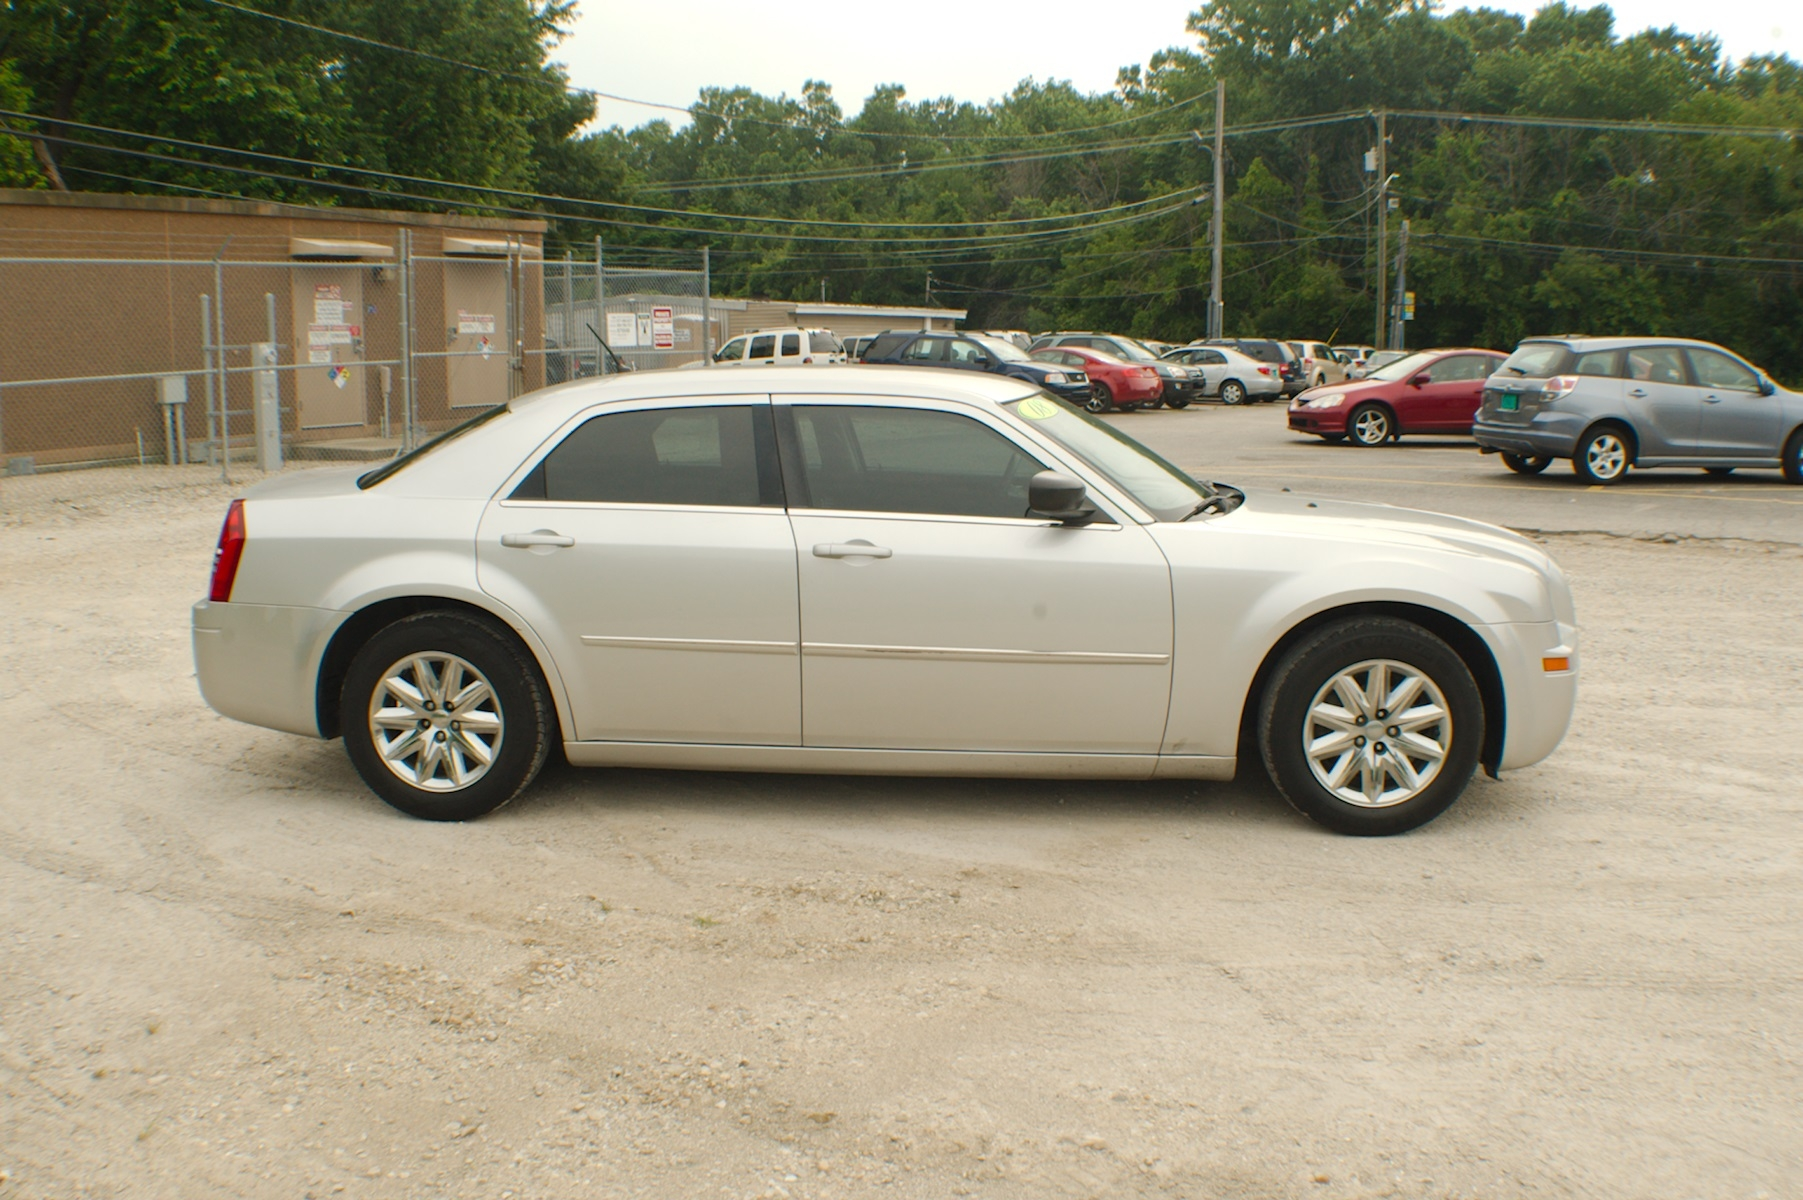 2008 Chrysler 300 Silver Sedan Used Car Sale Bannockburn Barrington Beach Park